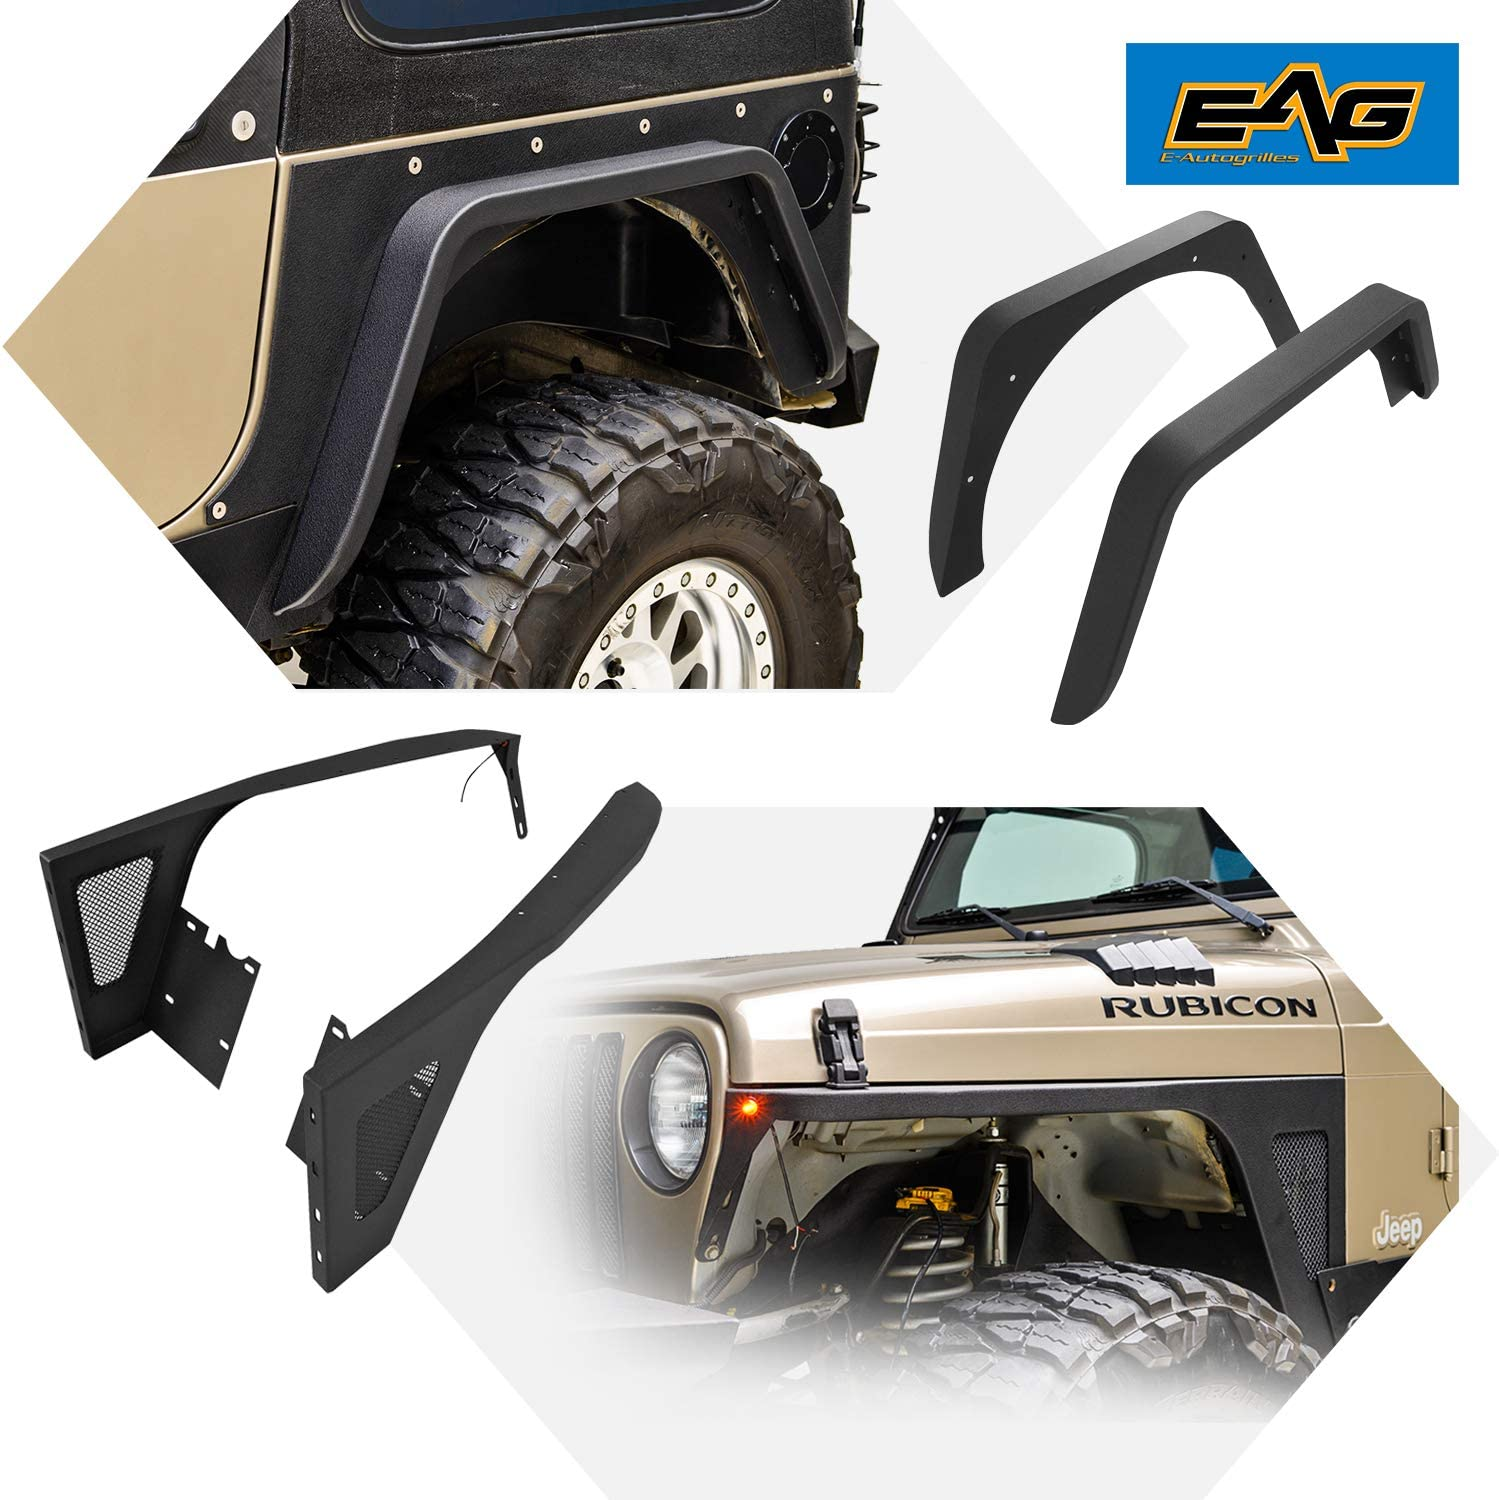 Virginia Popular brand Beach Mall EAG Steel Front and Rear Fender Fits Combo 97-06 4PCS for Flare